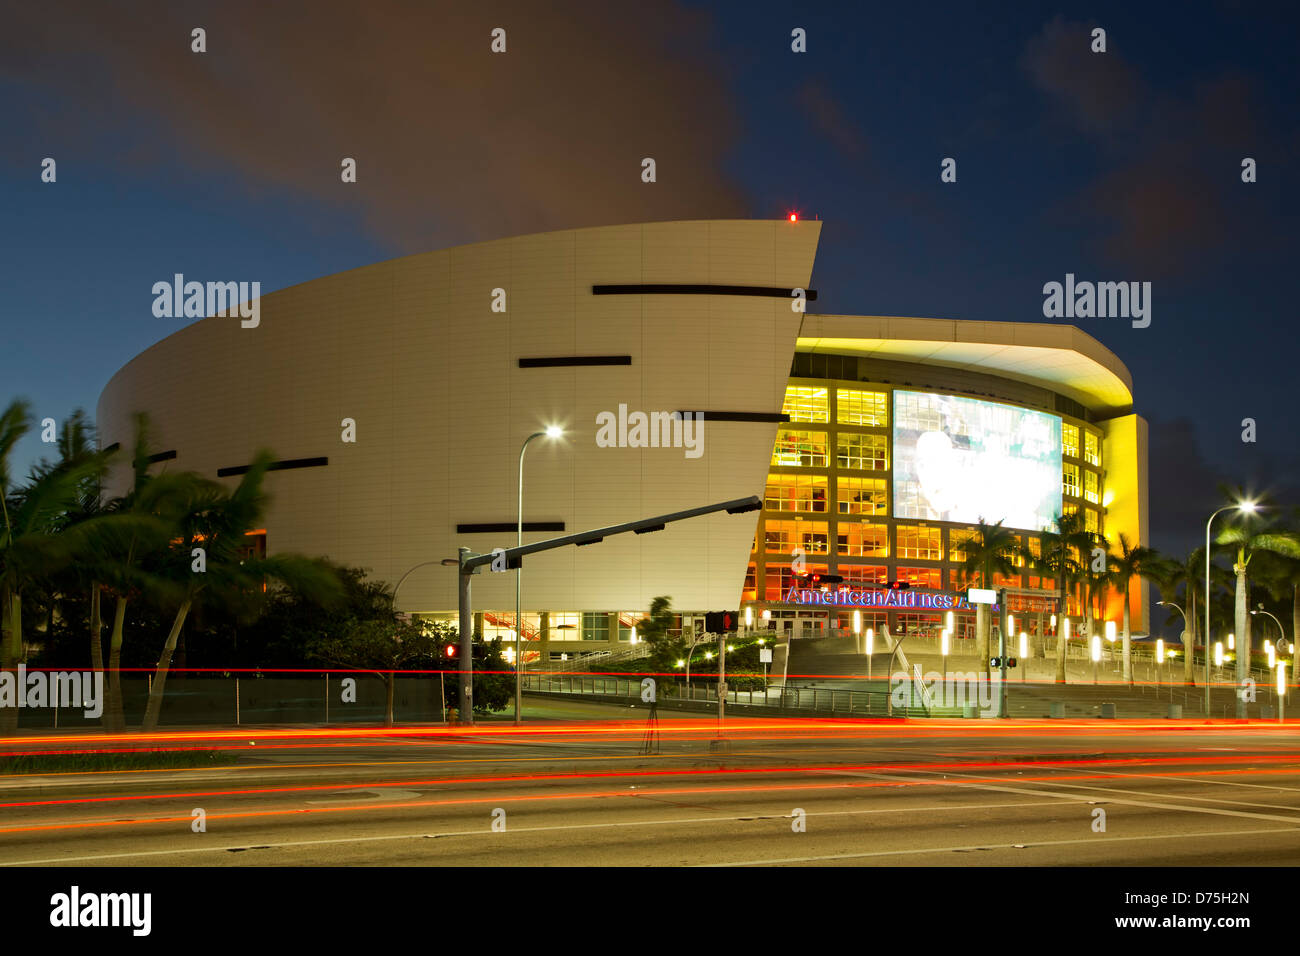 American Airlines Arena et traces légères, Miami, Floride, USA Photo Stock